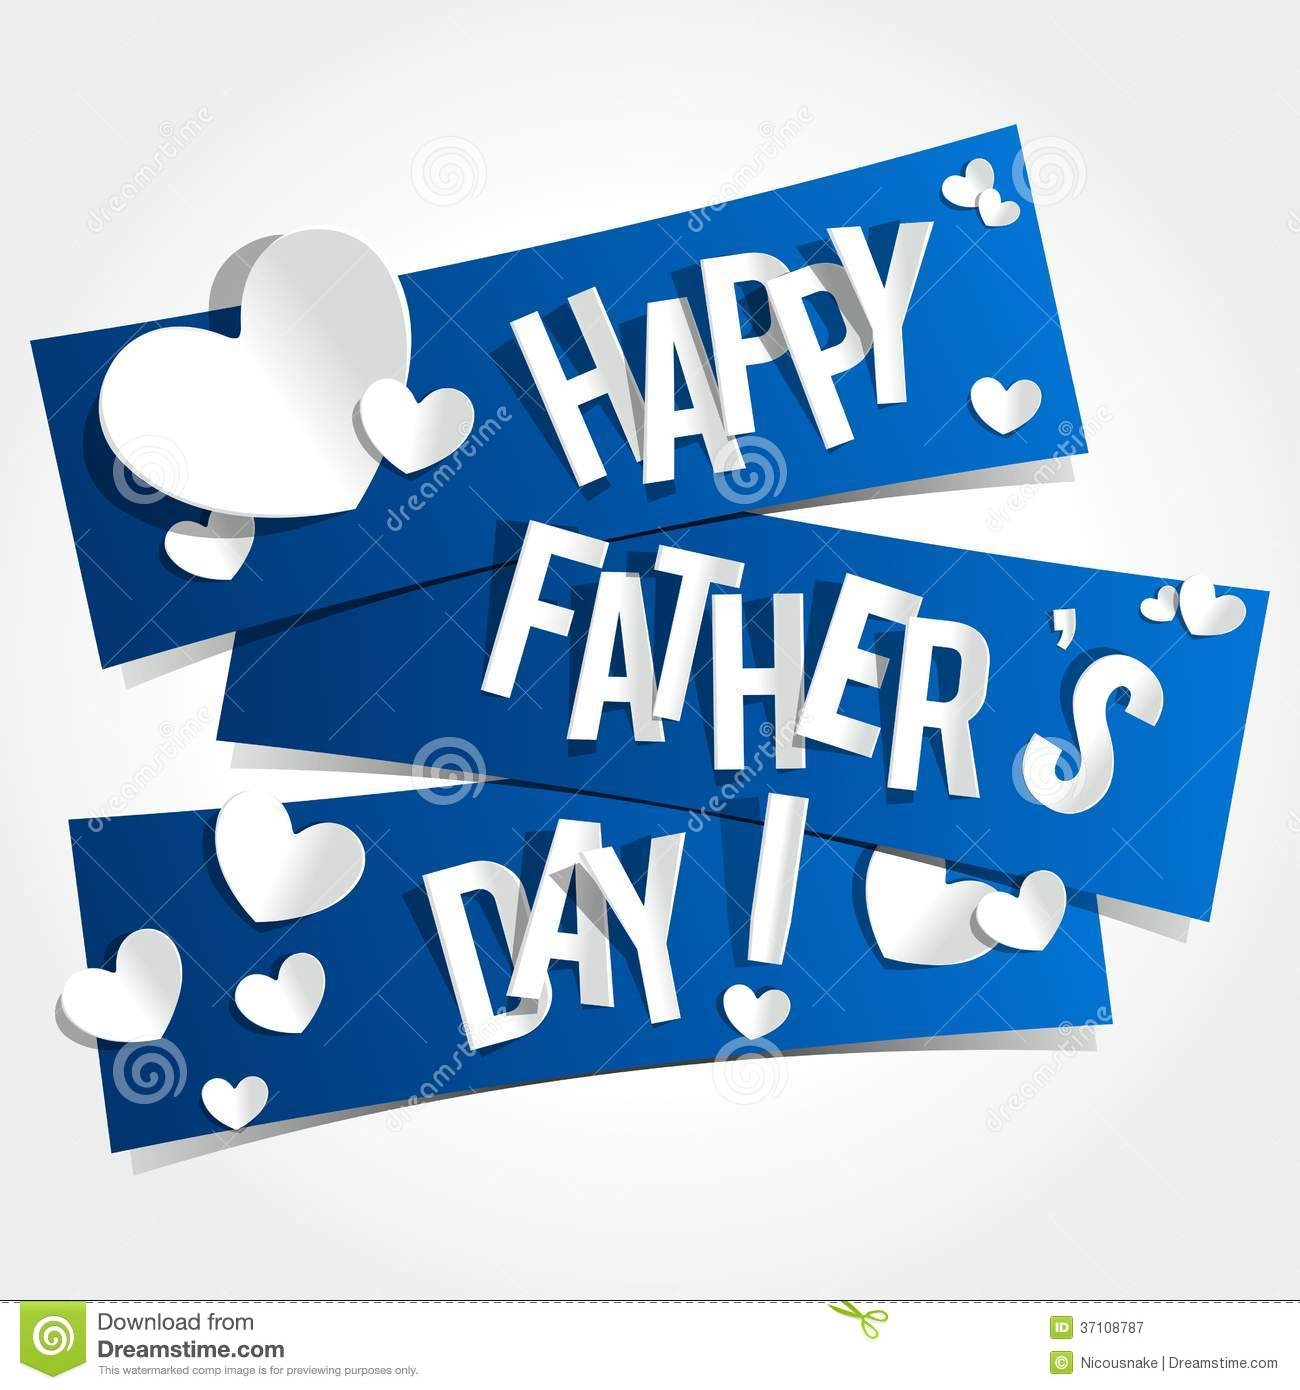 father's day vector free download